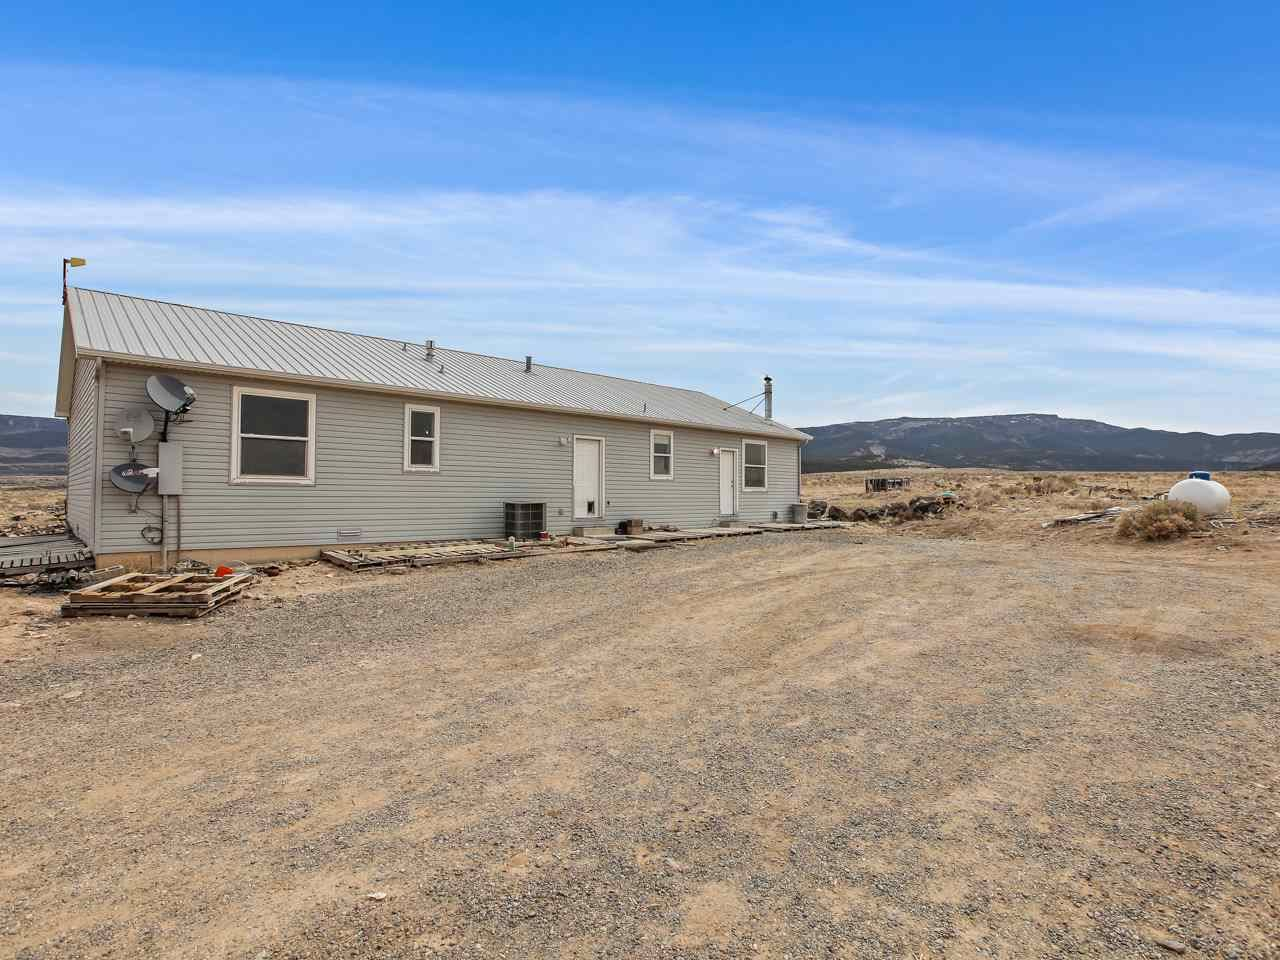 Photo of 4555 Kannah Creek Road, Whitewater, CO 81527 (MLS # 20211744)